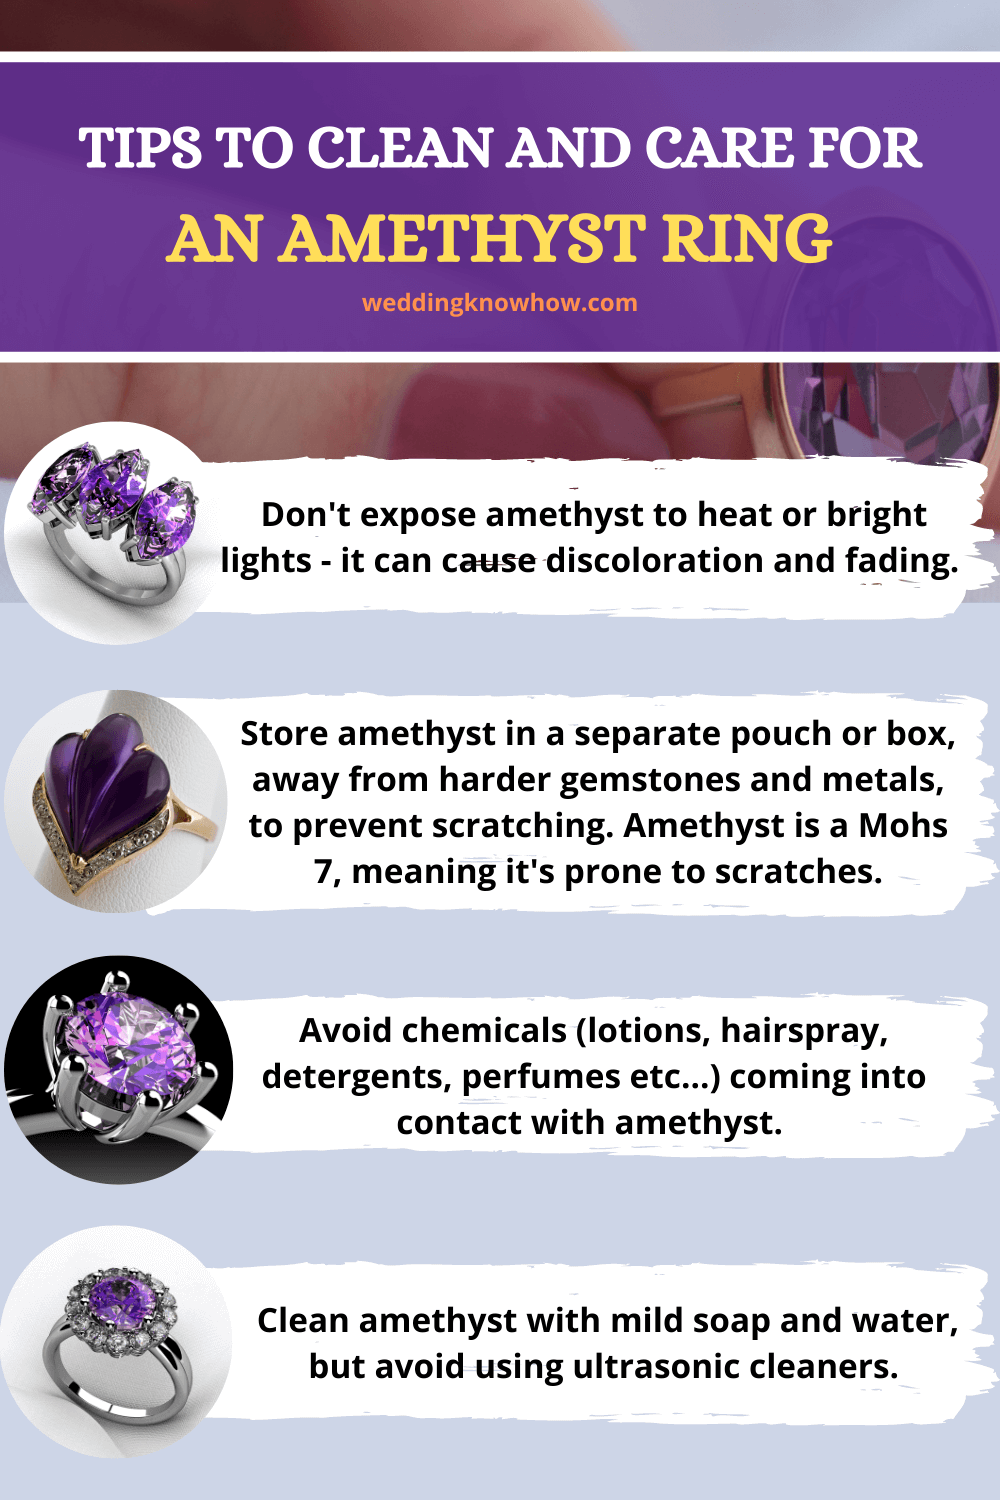 cleaning-and-caring-for-amethyst